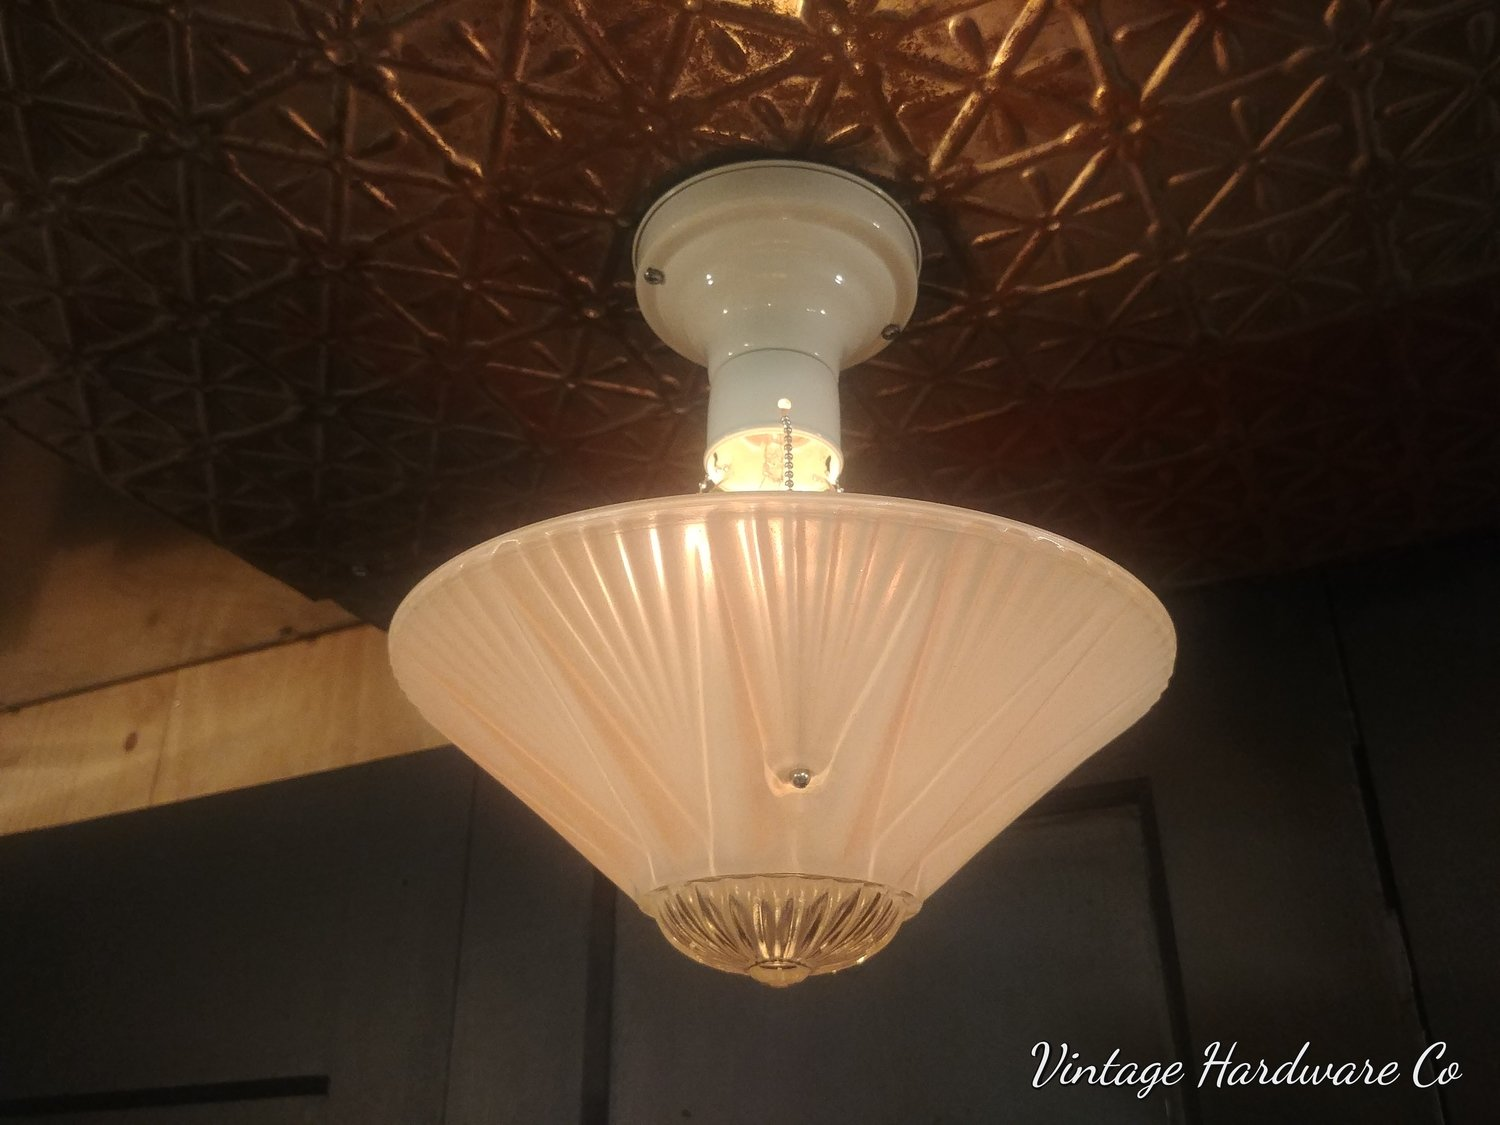 3 Chain Art Deco Hanging Light Fixture - Chandelier Pink Frosted Glass Shade